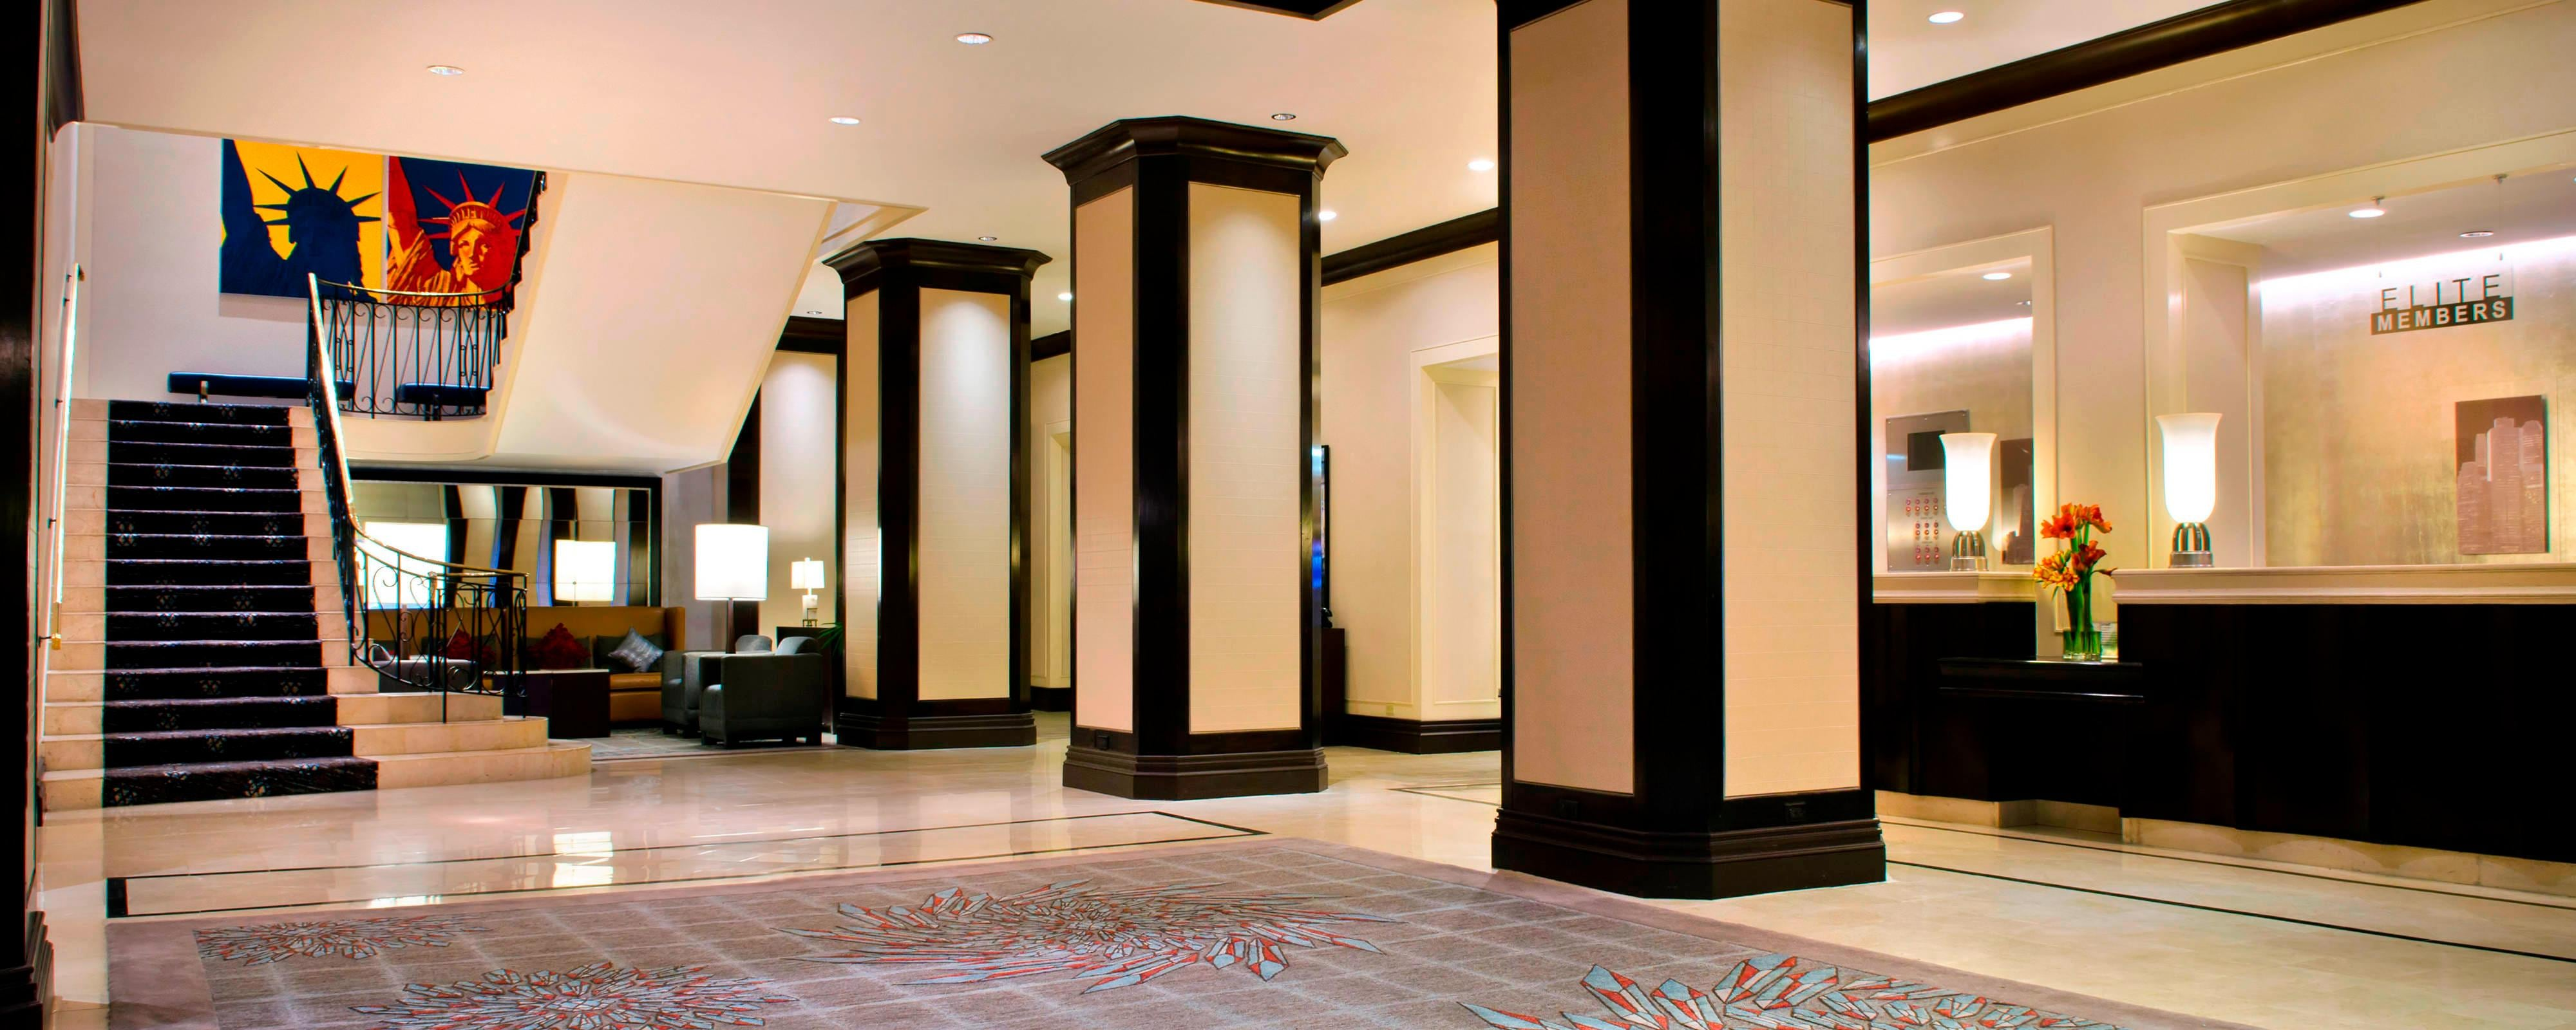 NYC Hotel Near Subway Station | New York Marriott Downtown